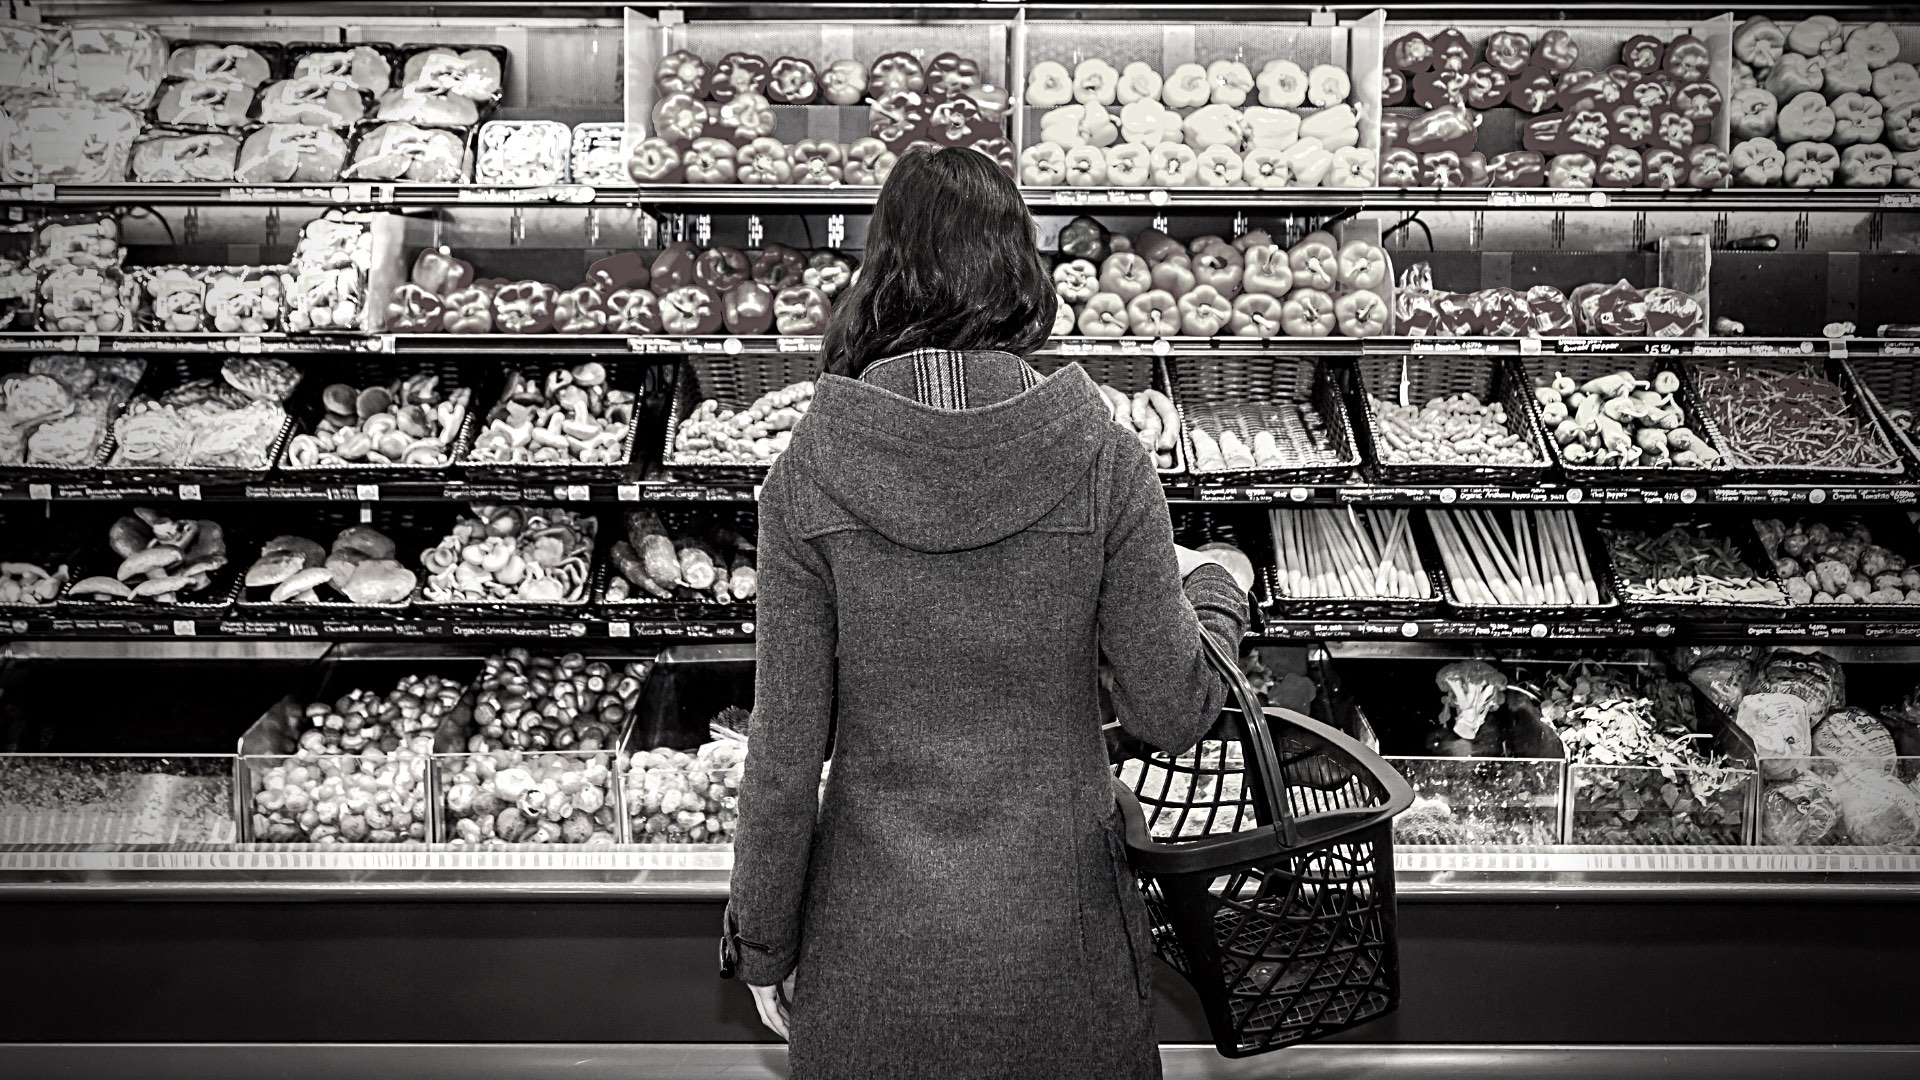 Woman in grocery store_shutterstock_The Public Square Is a Grocery Store